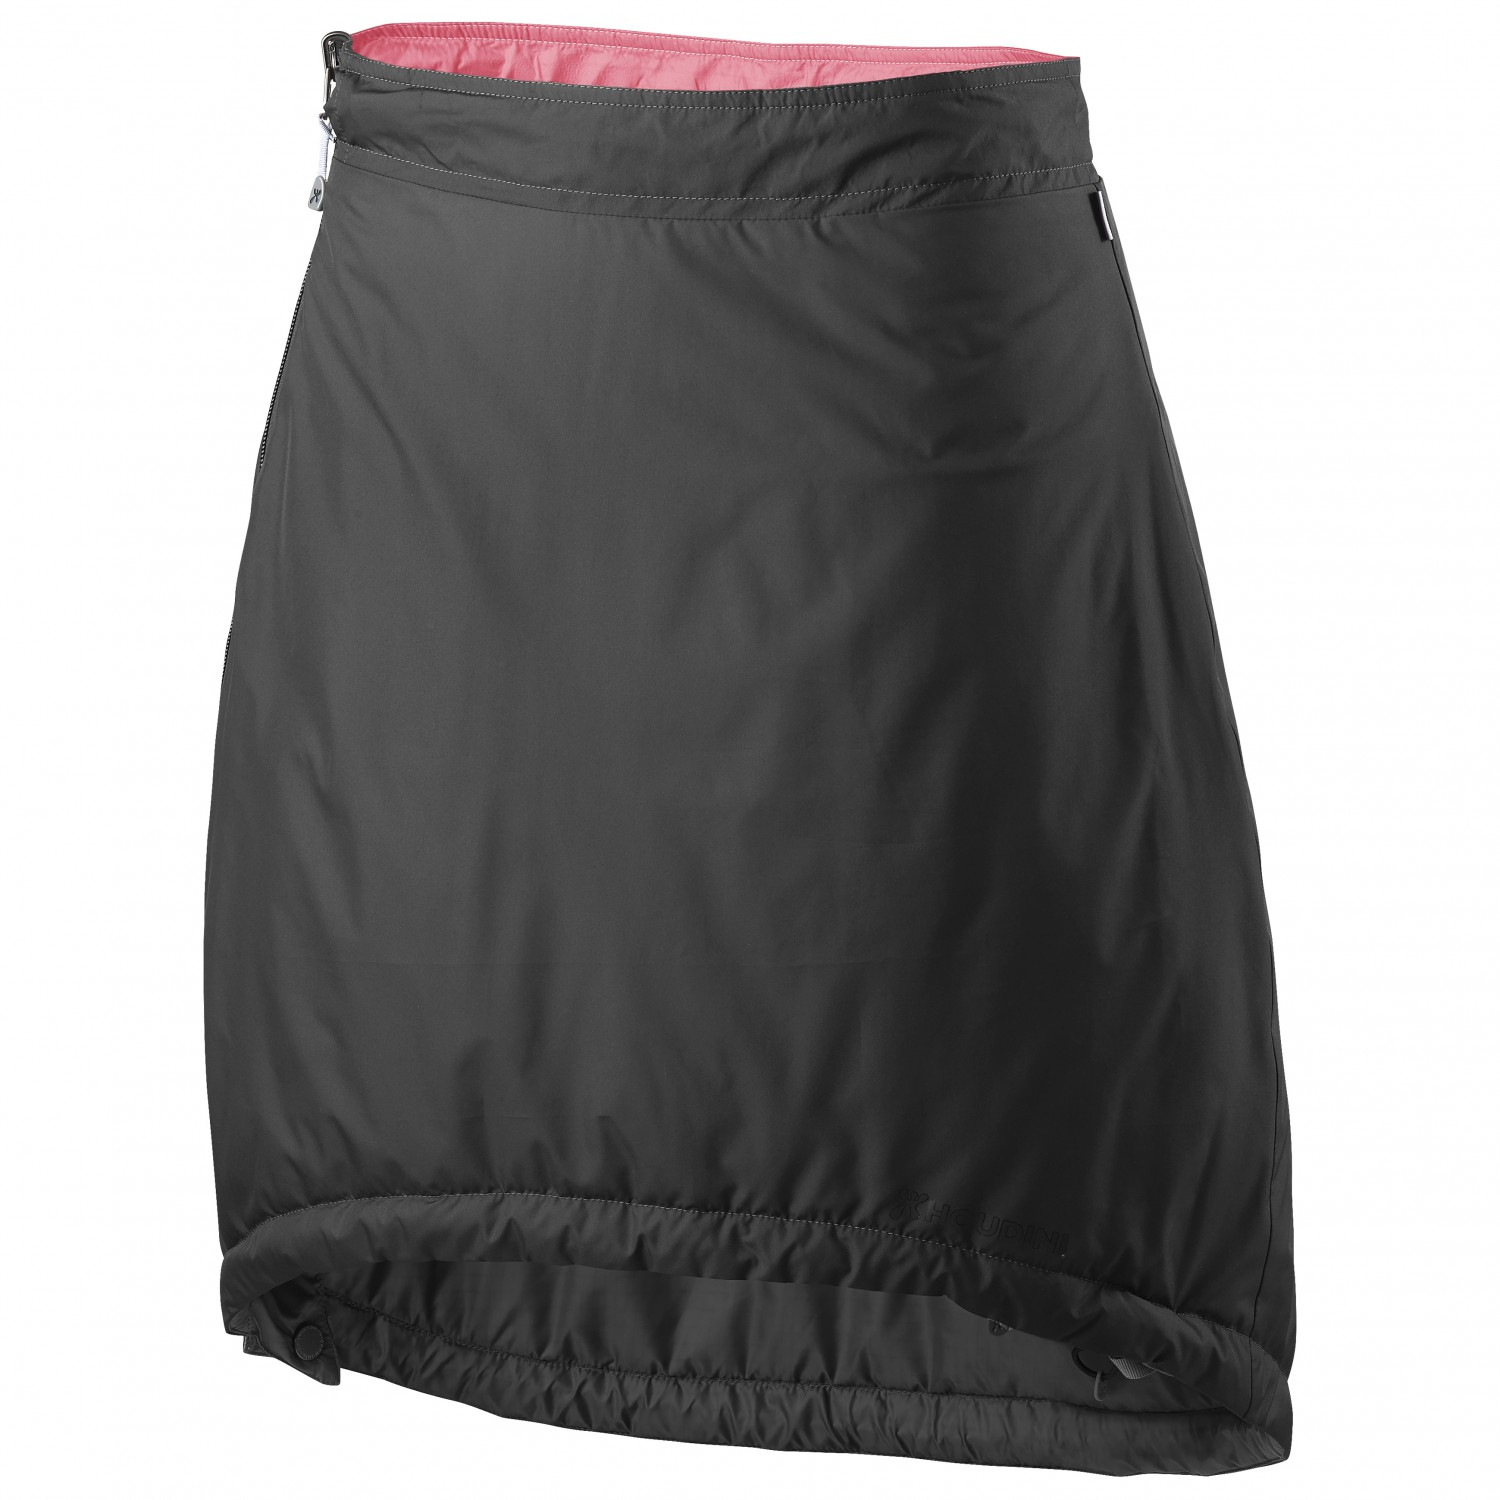 e3242e9eb Houdini Sleepwalker - Synthetic skirt Women's | Buy online ...